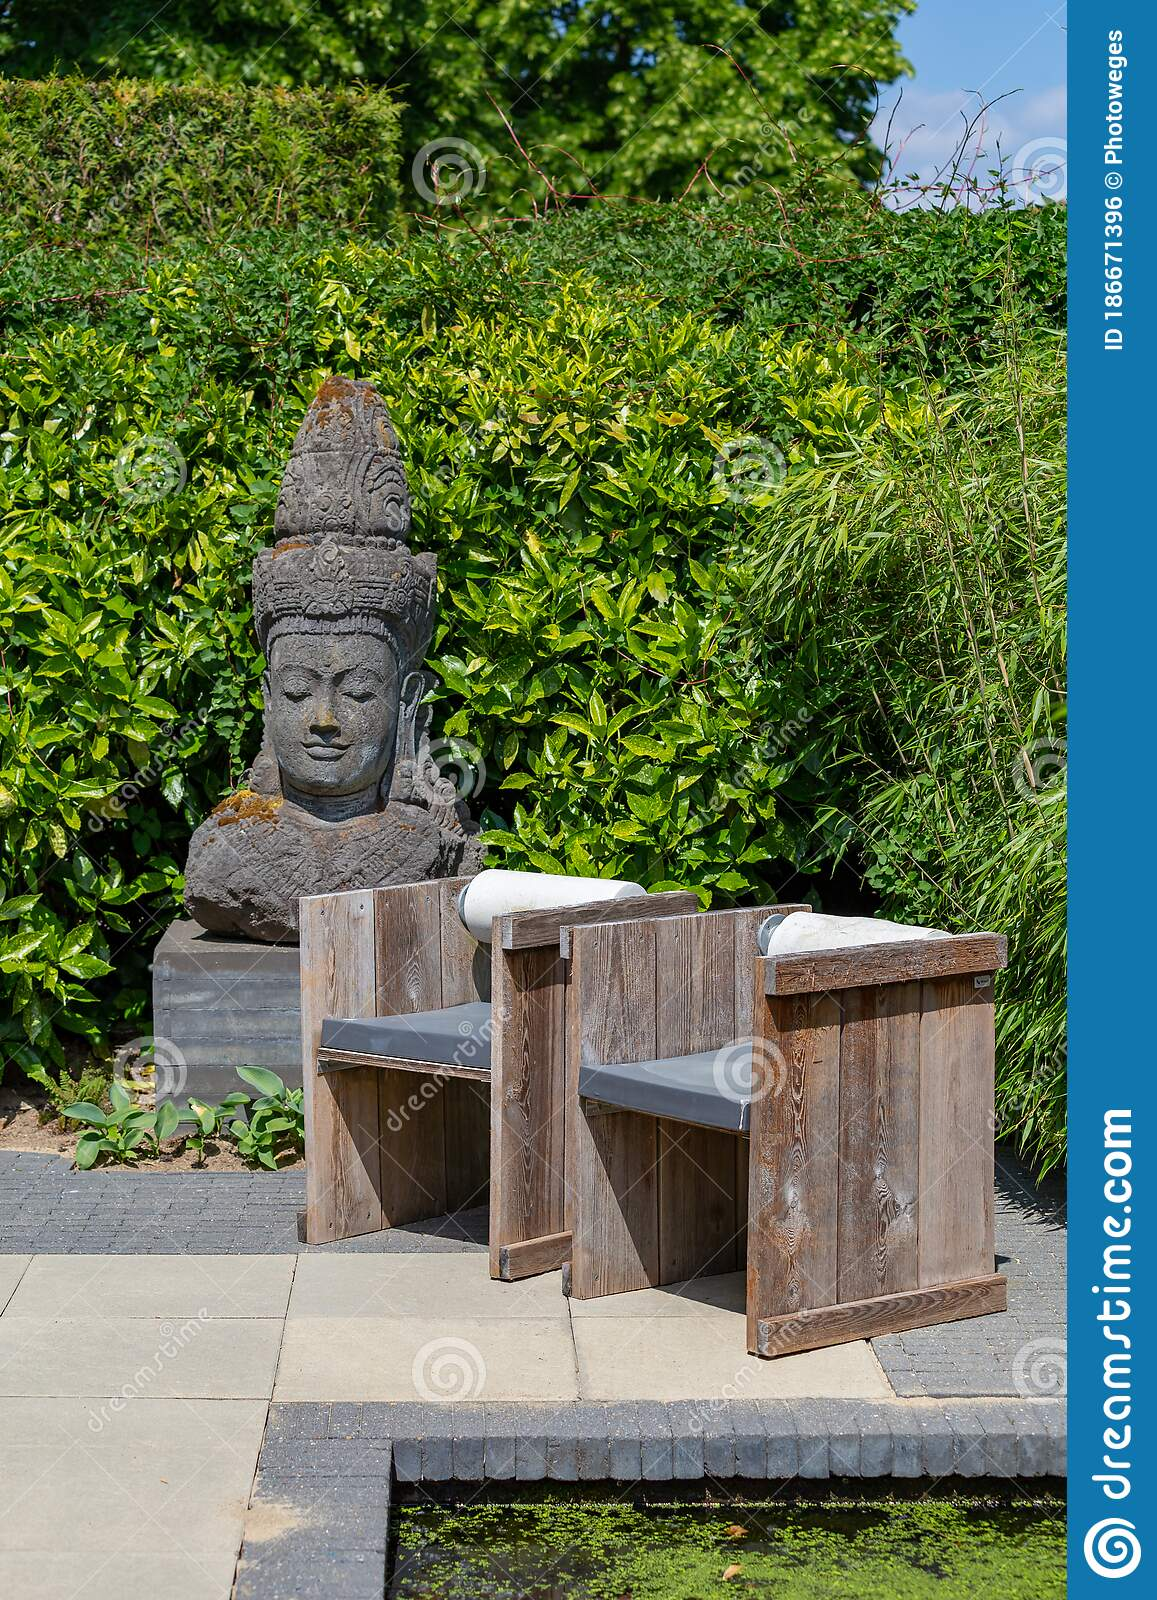 54 558 Design Buddha Photos Free Royalty Free Stock Photos From Dreamstime